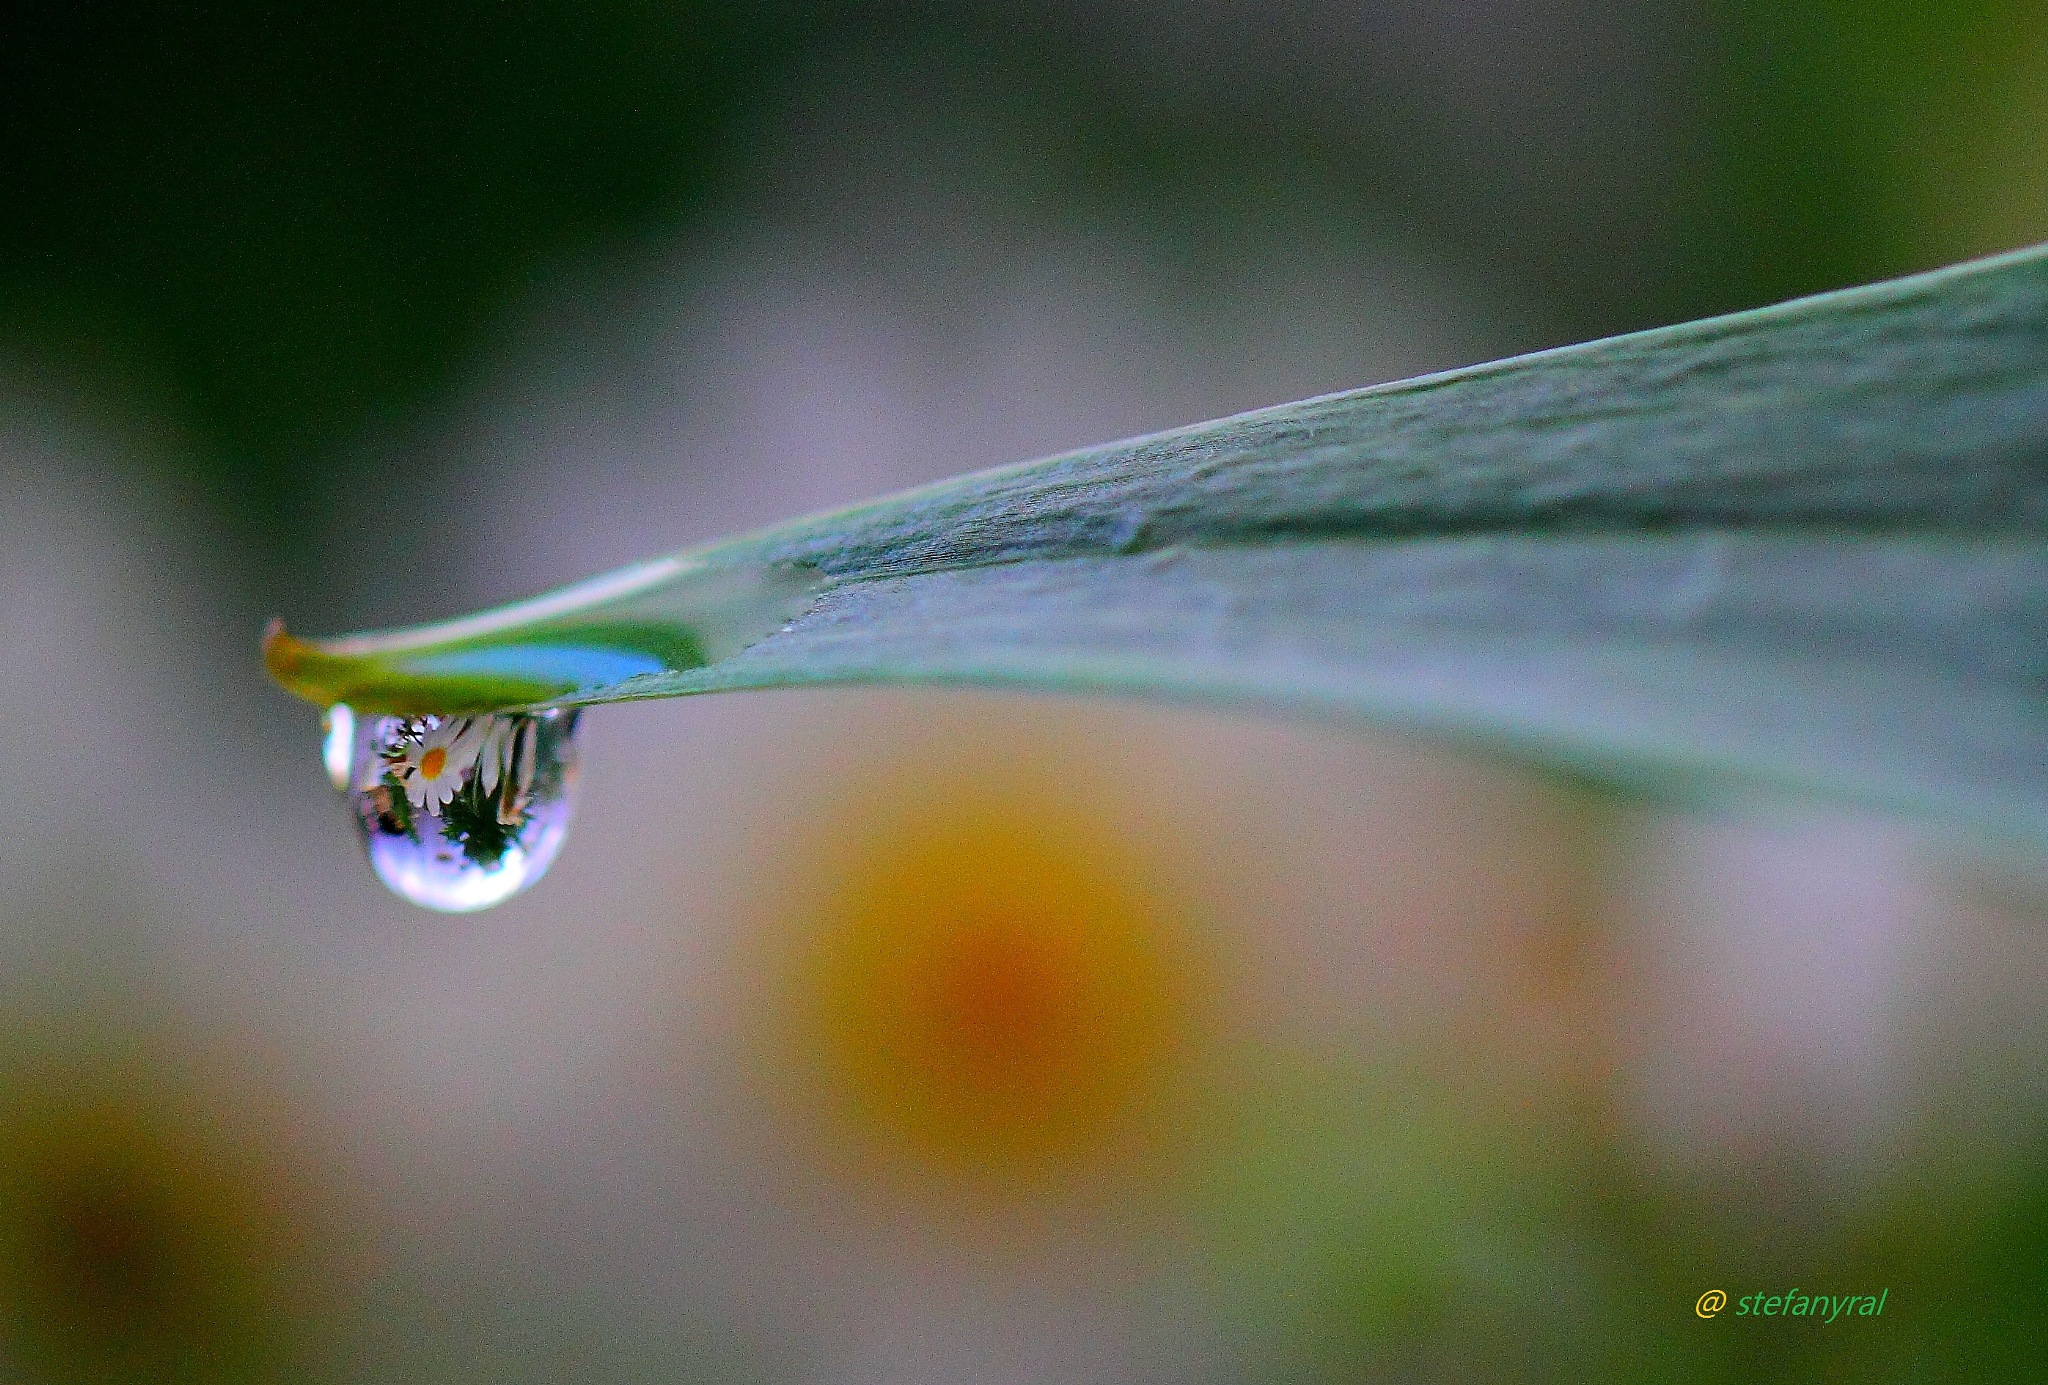 Daisy drop by stefanyral